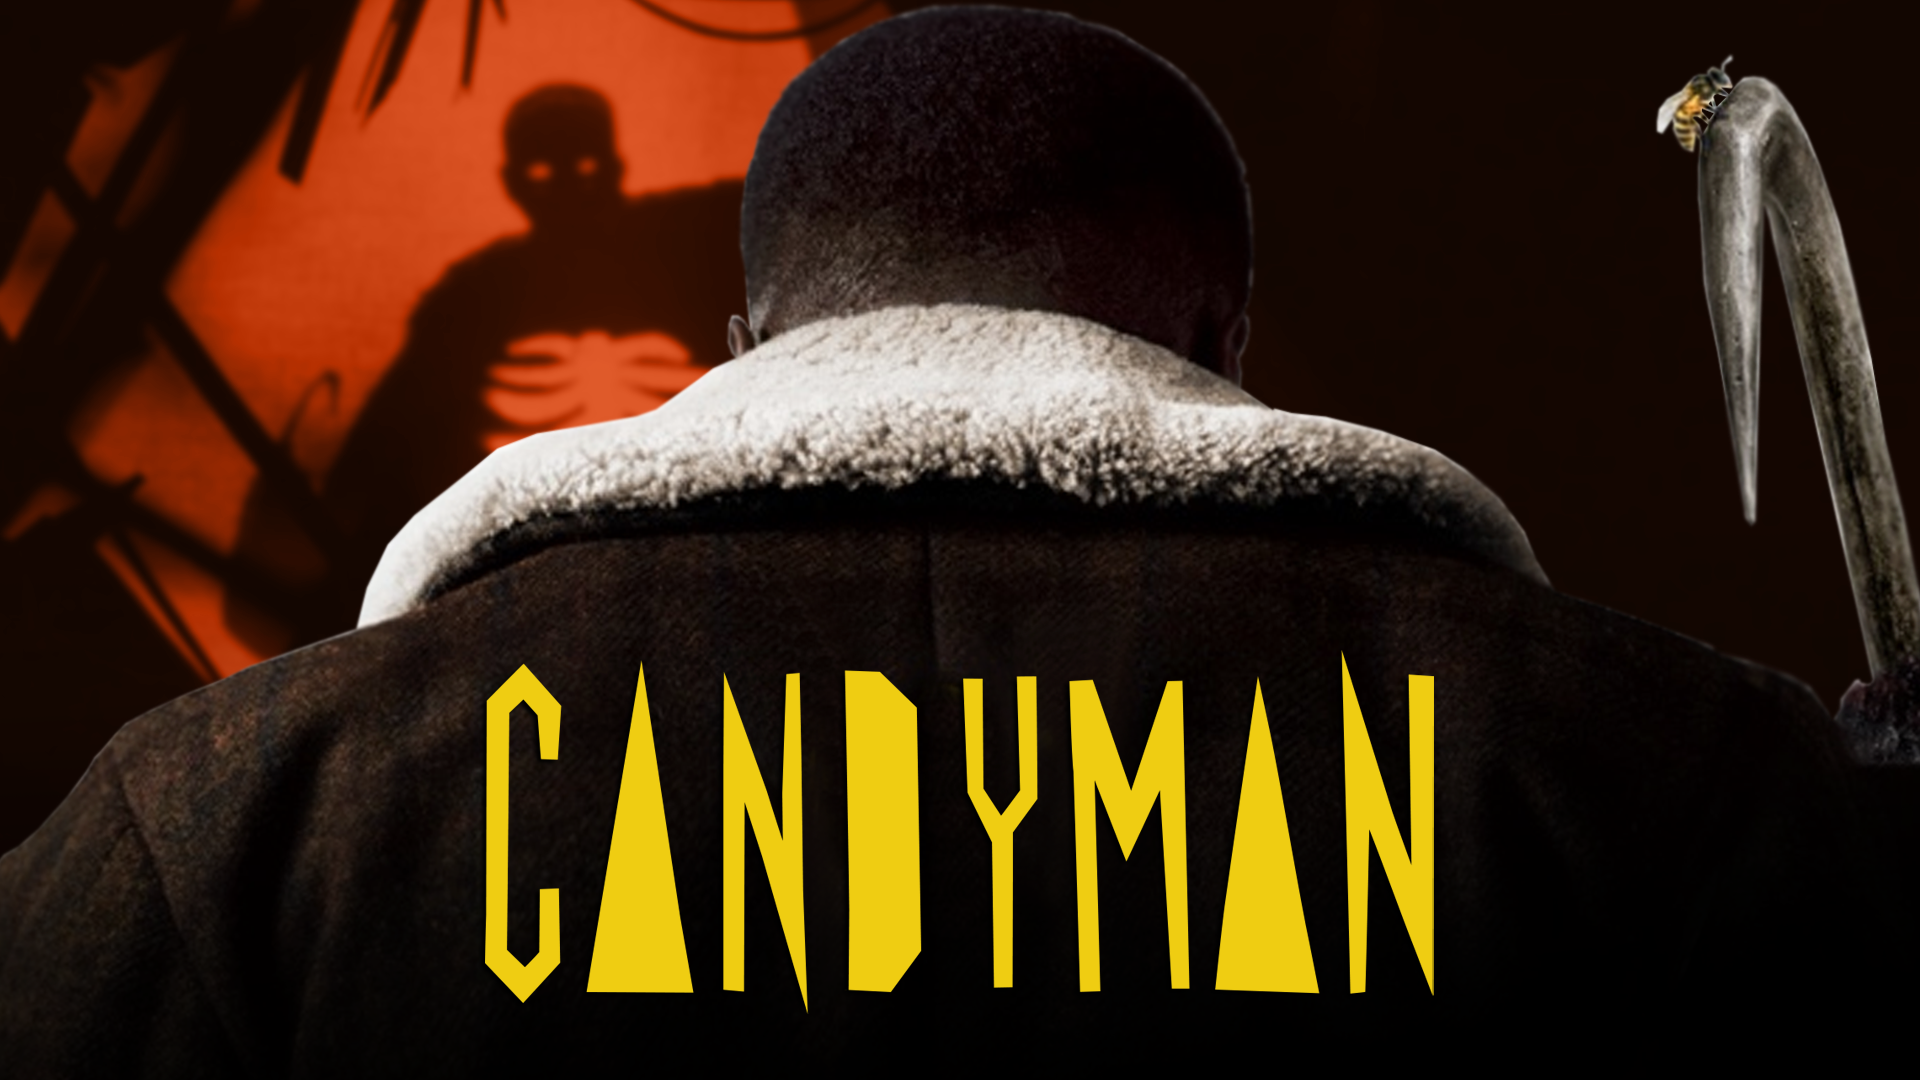 Candyman is a worthy sequel full of psychological horror